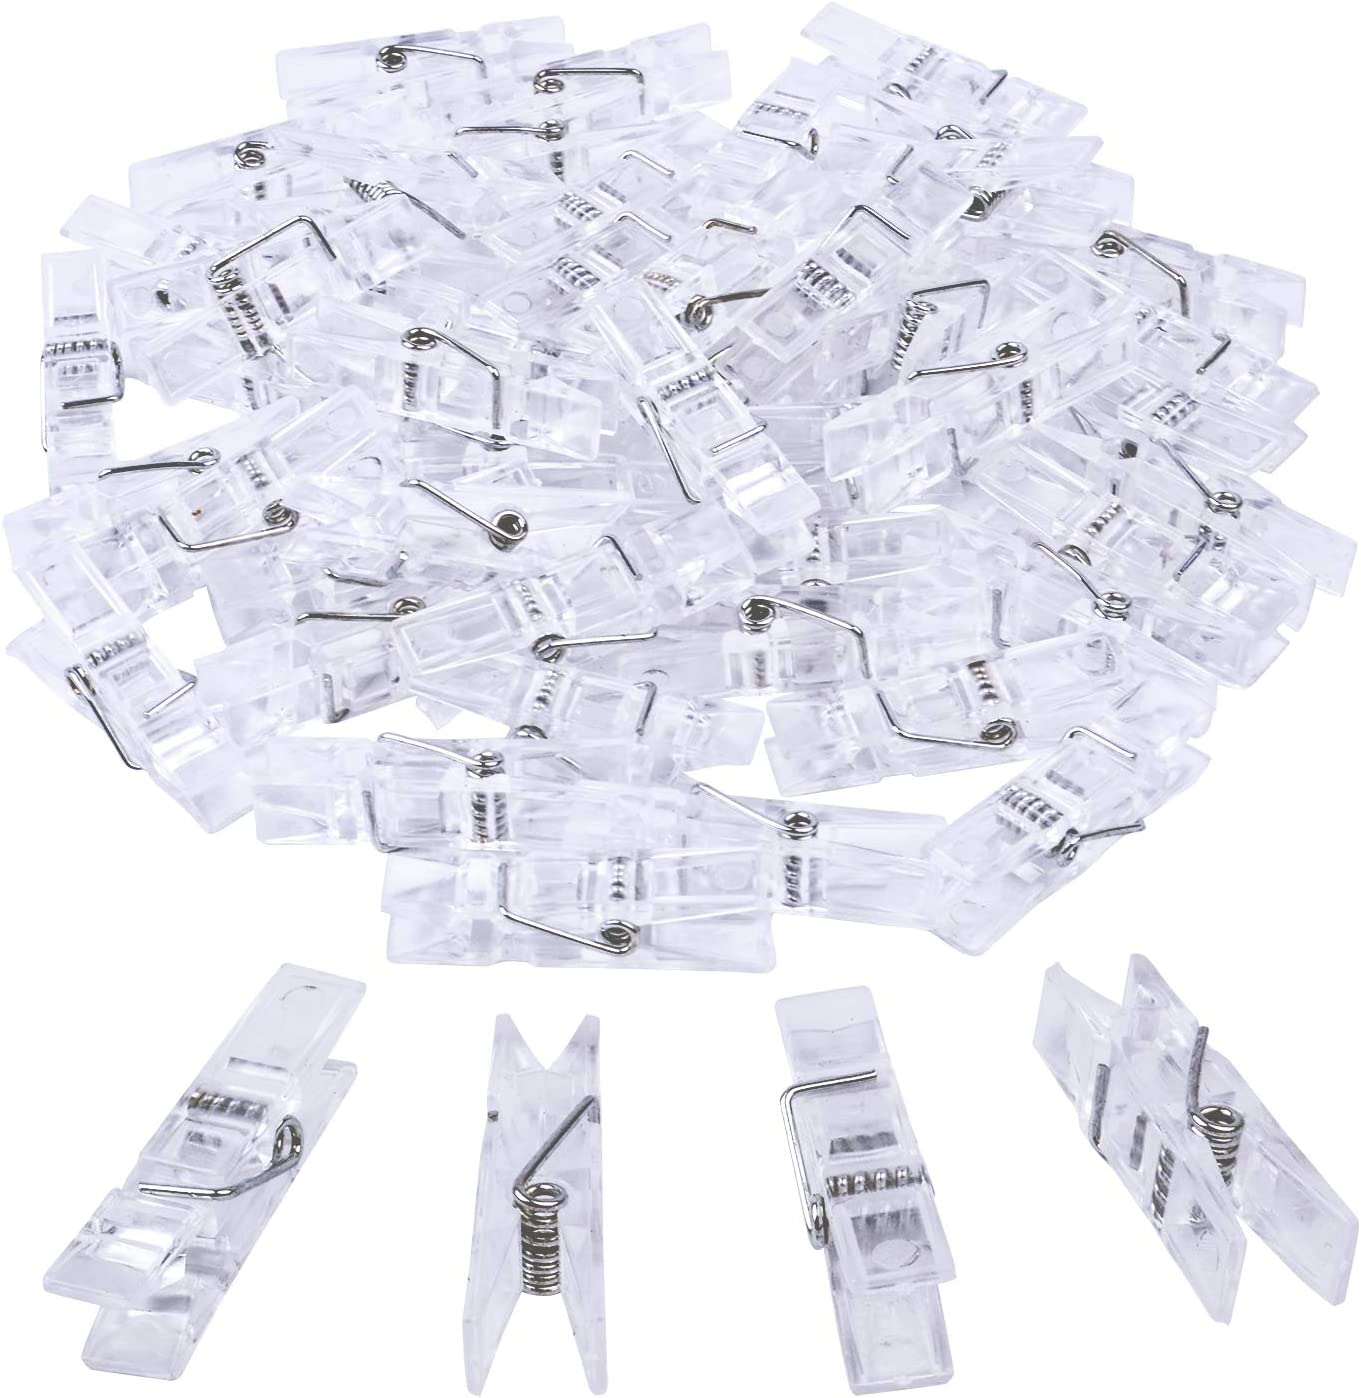 BronaGrand 50pcs Small Clear Plastic Utility Paper Clip, Clothespins Clip, Clothes Line Clips,Photo Clips 3.5x0.7x1cm